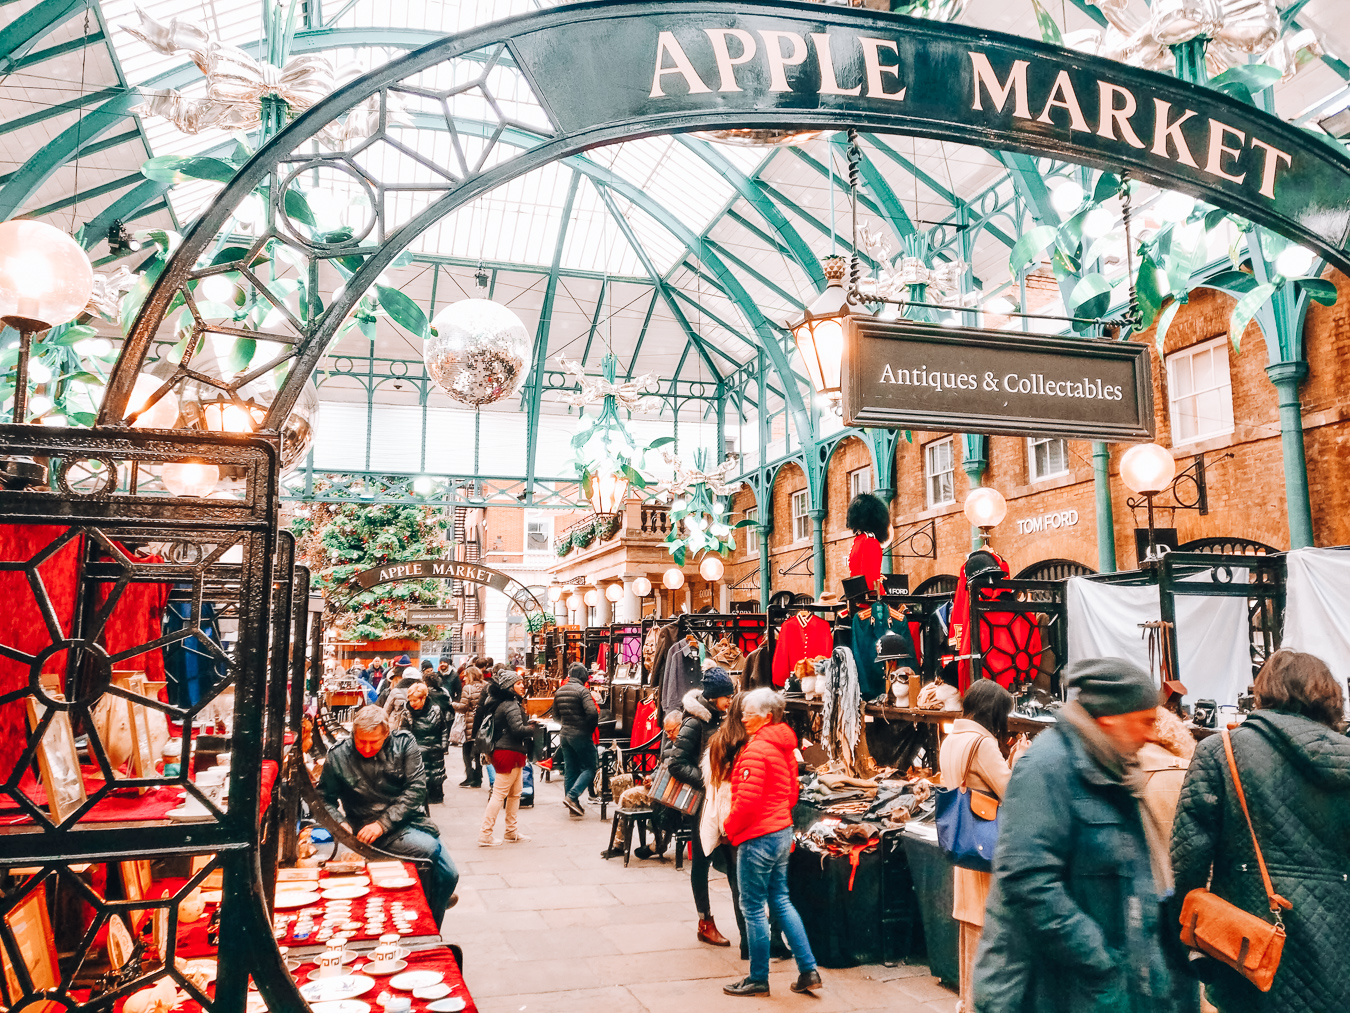 Apple Market at Covent Garden